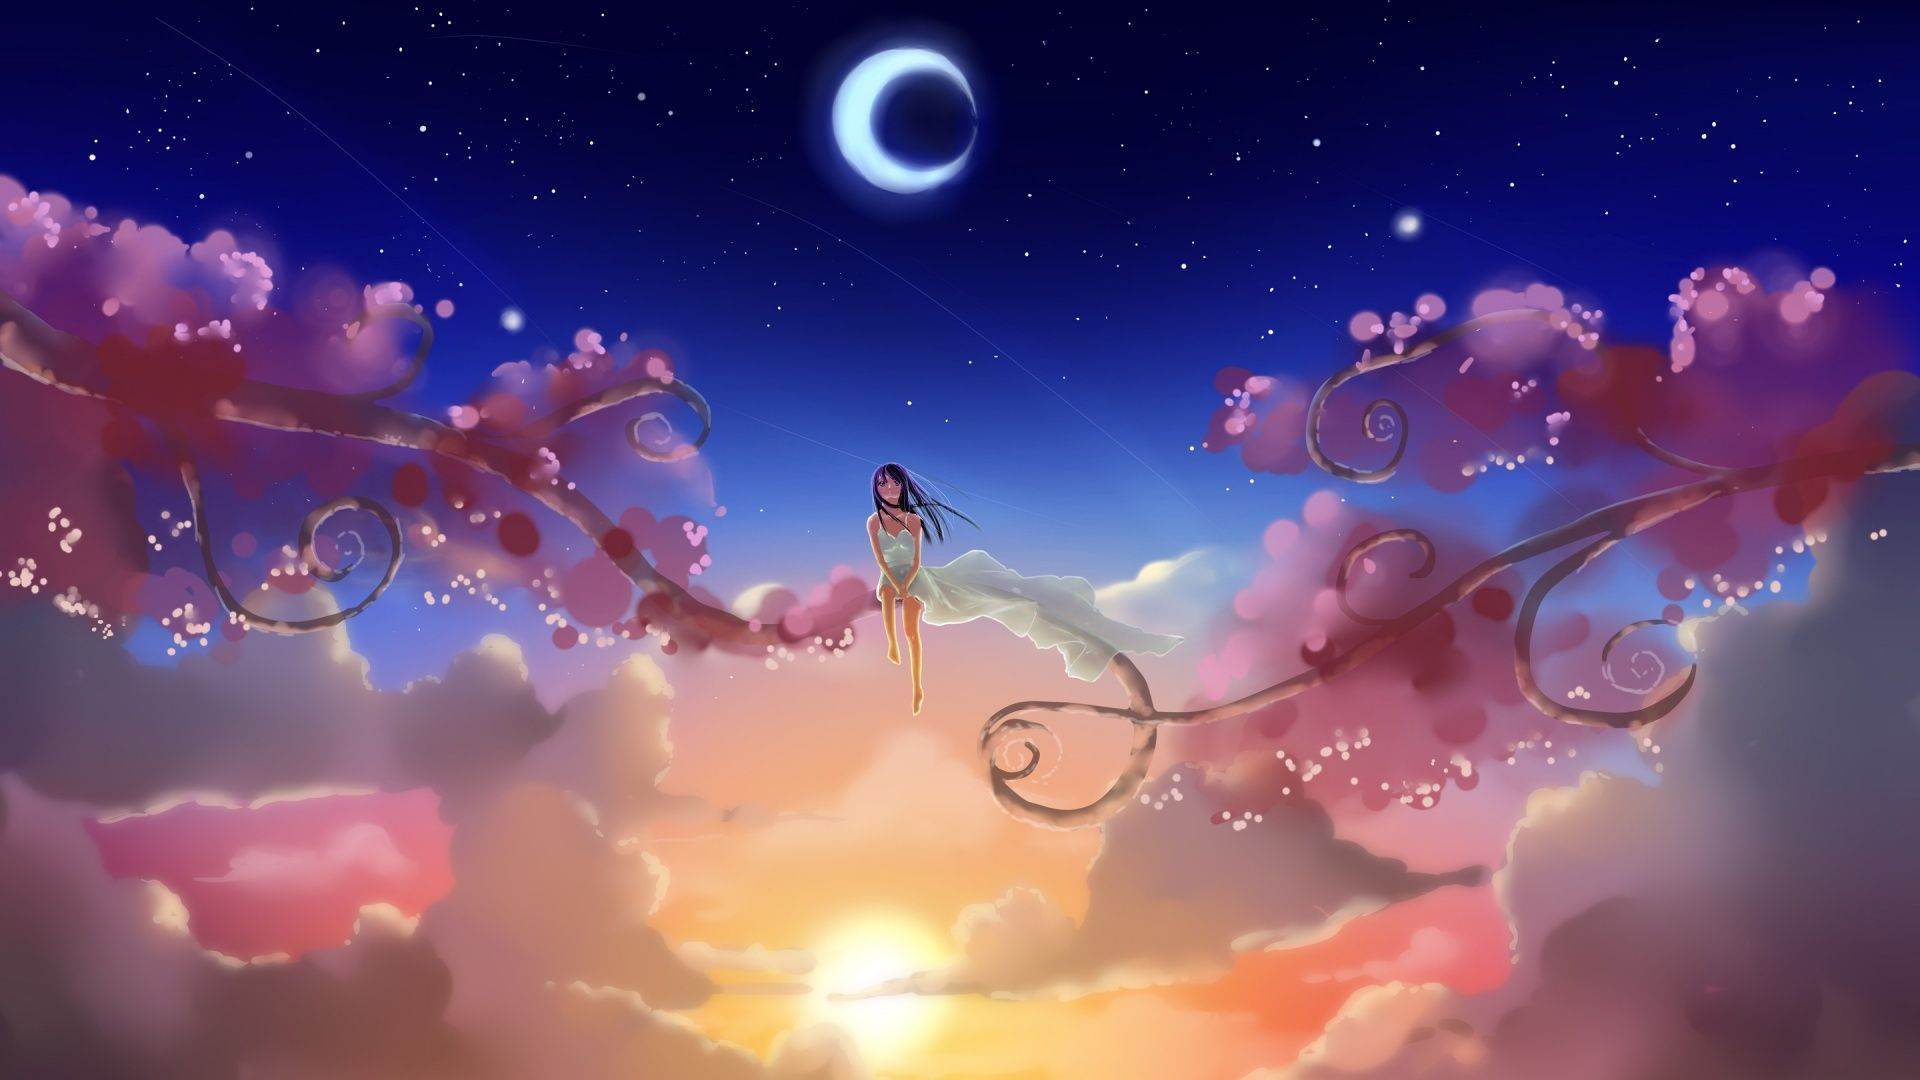 Fantasy 3d Mysterious Mystery Wallpaper Girl Sitting Sky Art Wallpaper Anime Wallpaper World Wallpaper